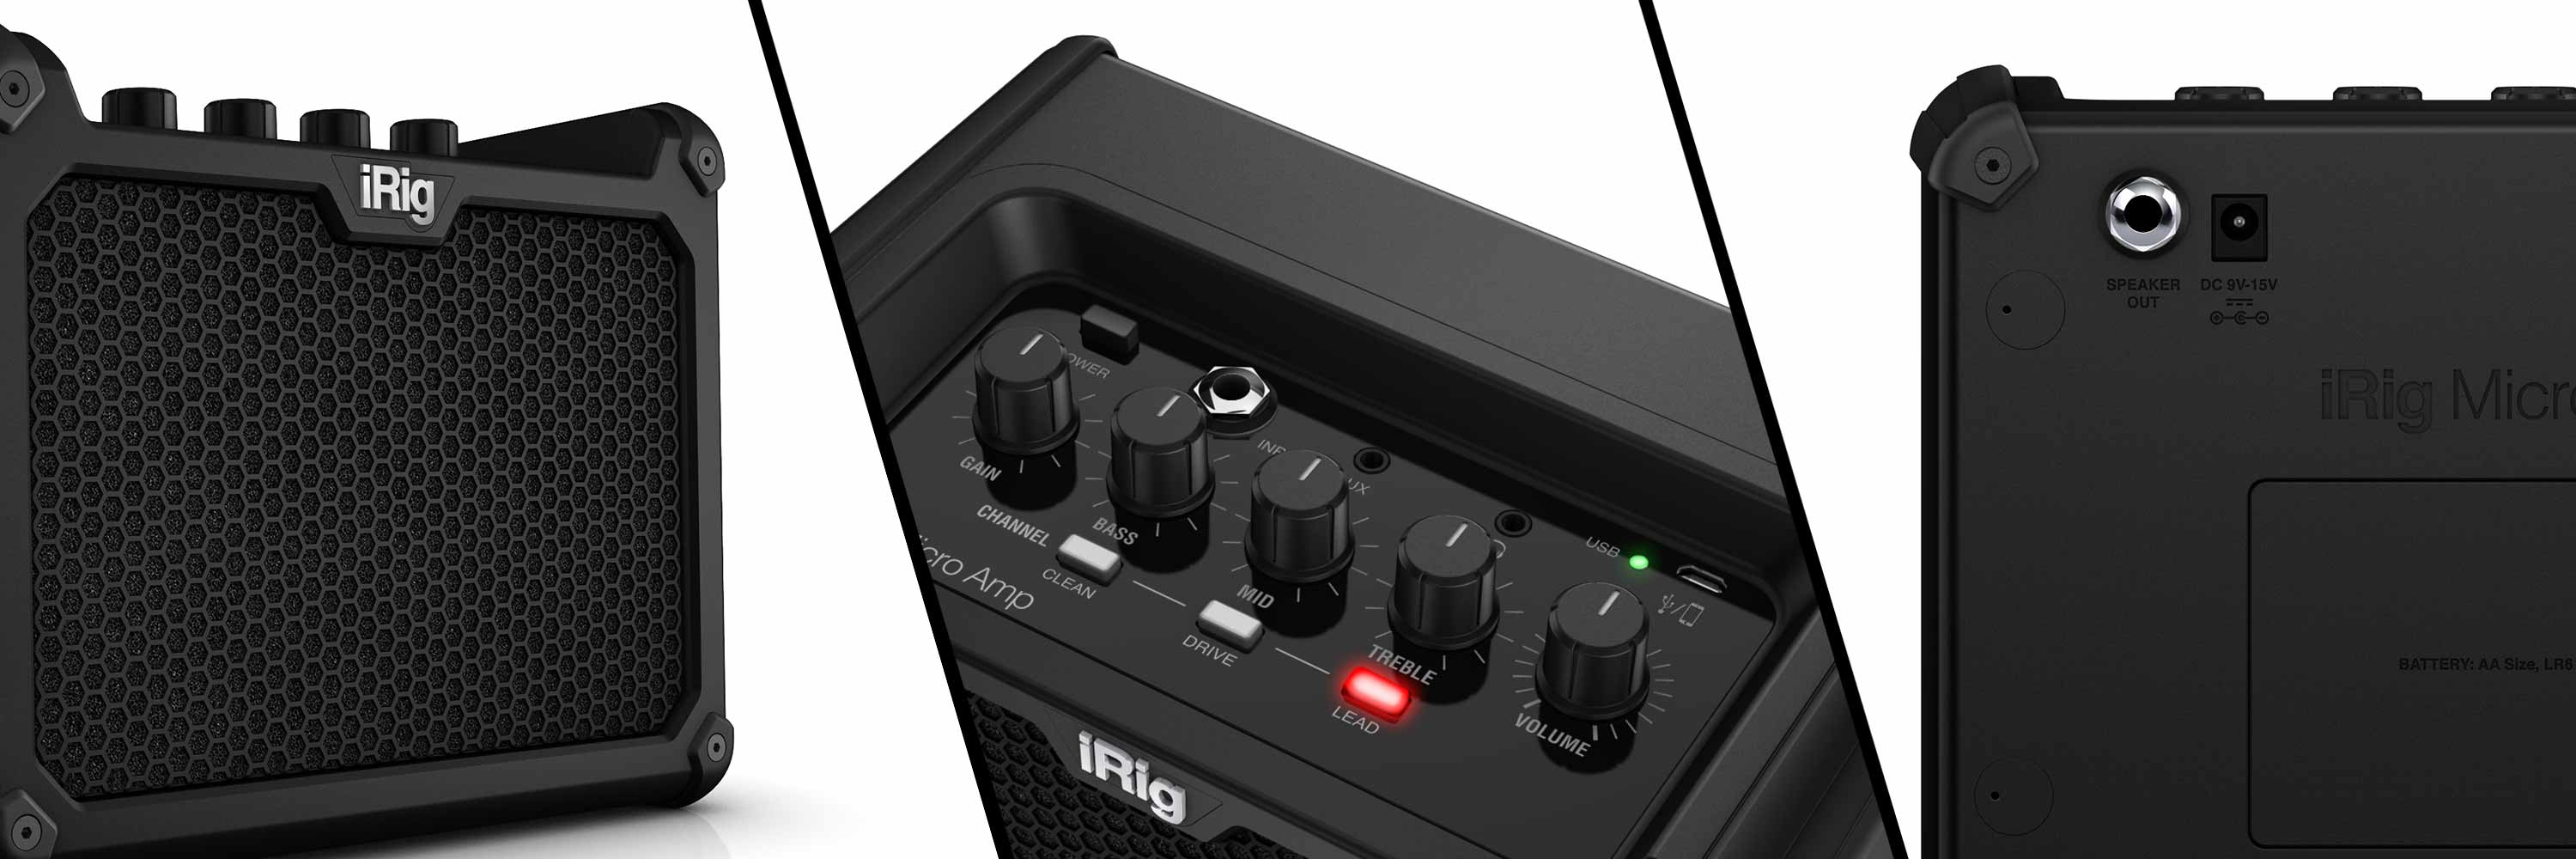 iRig Micro Amp images